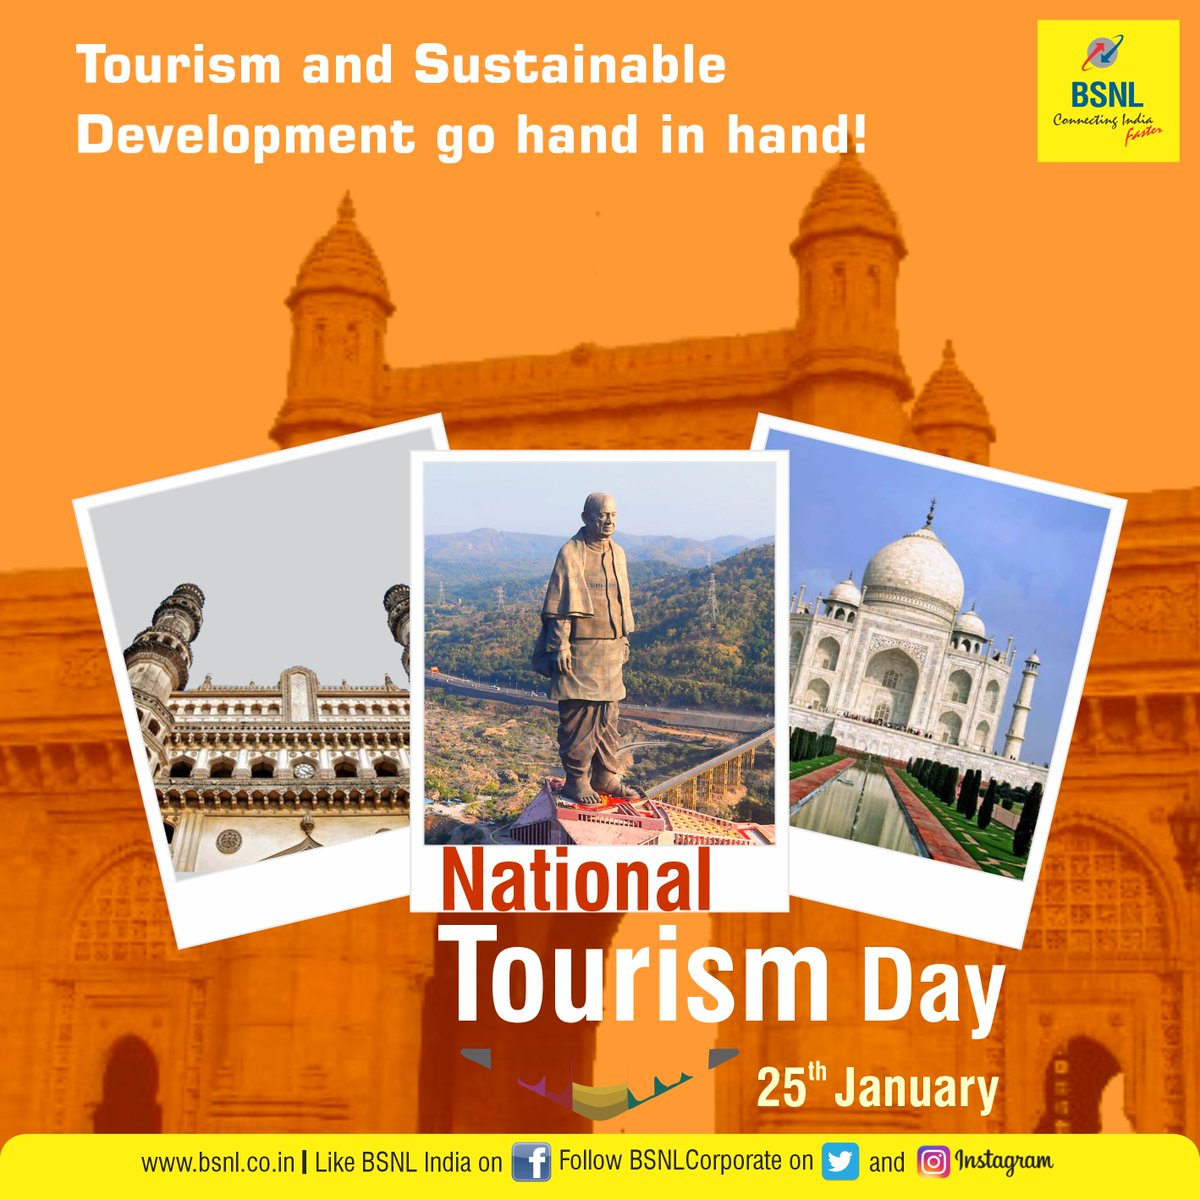 This year, travel and soak in the rich culture of India, but with precautions. @tourismgoi #NationalTourismDay #NationalTourismDay2021 #Unite2FightCorona